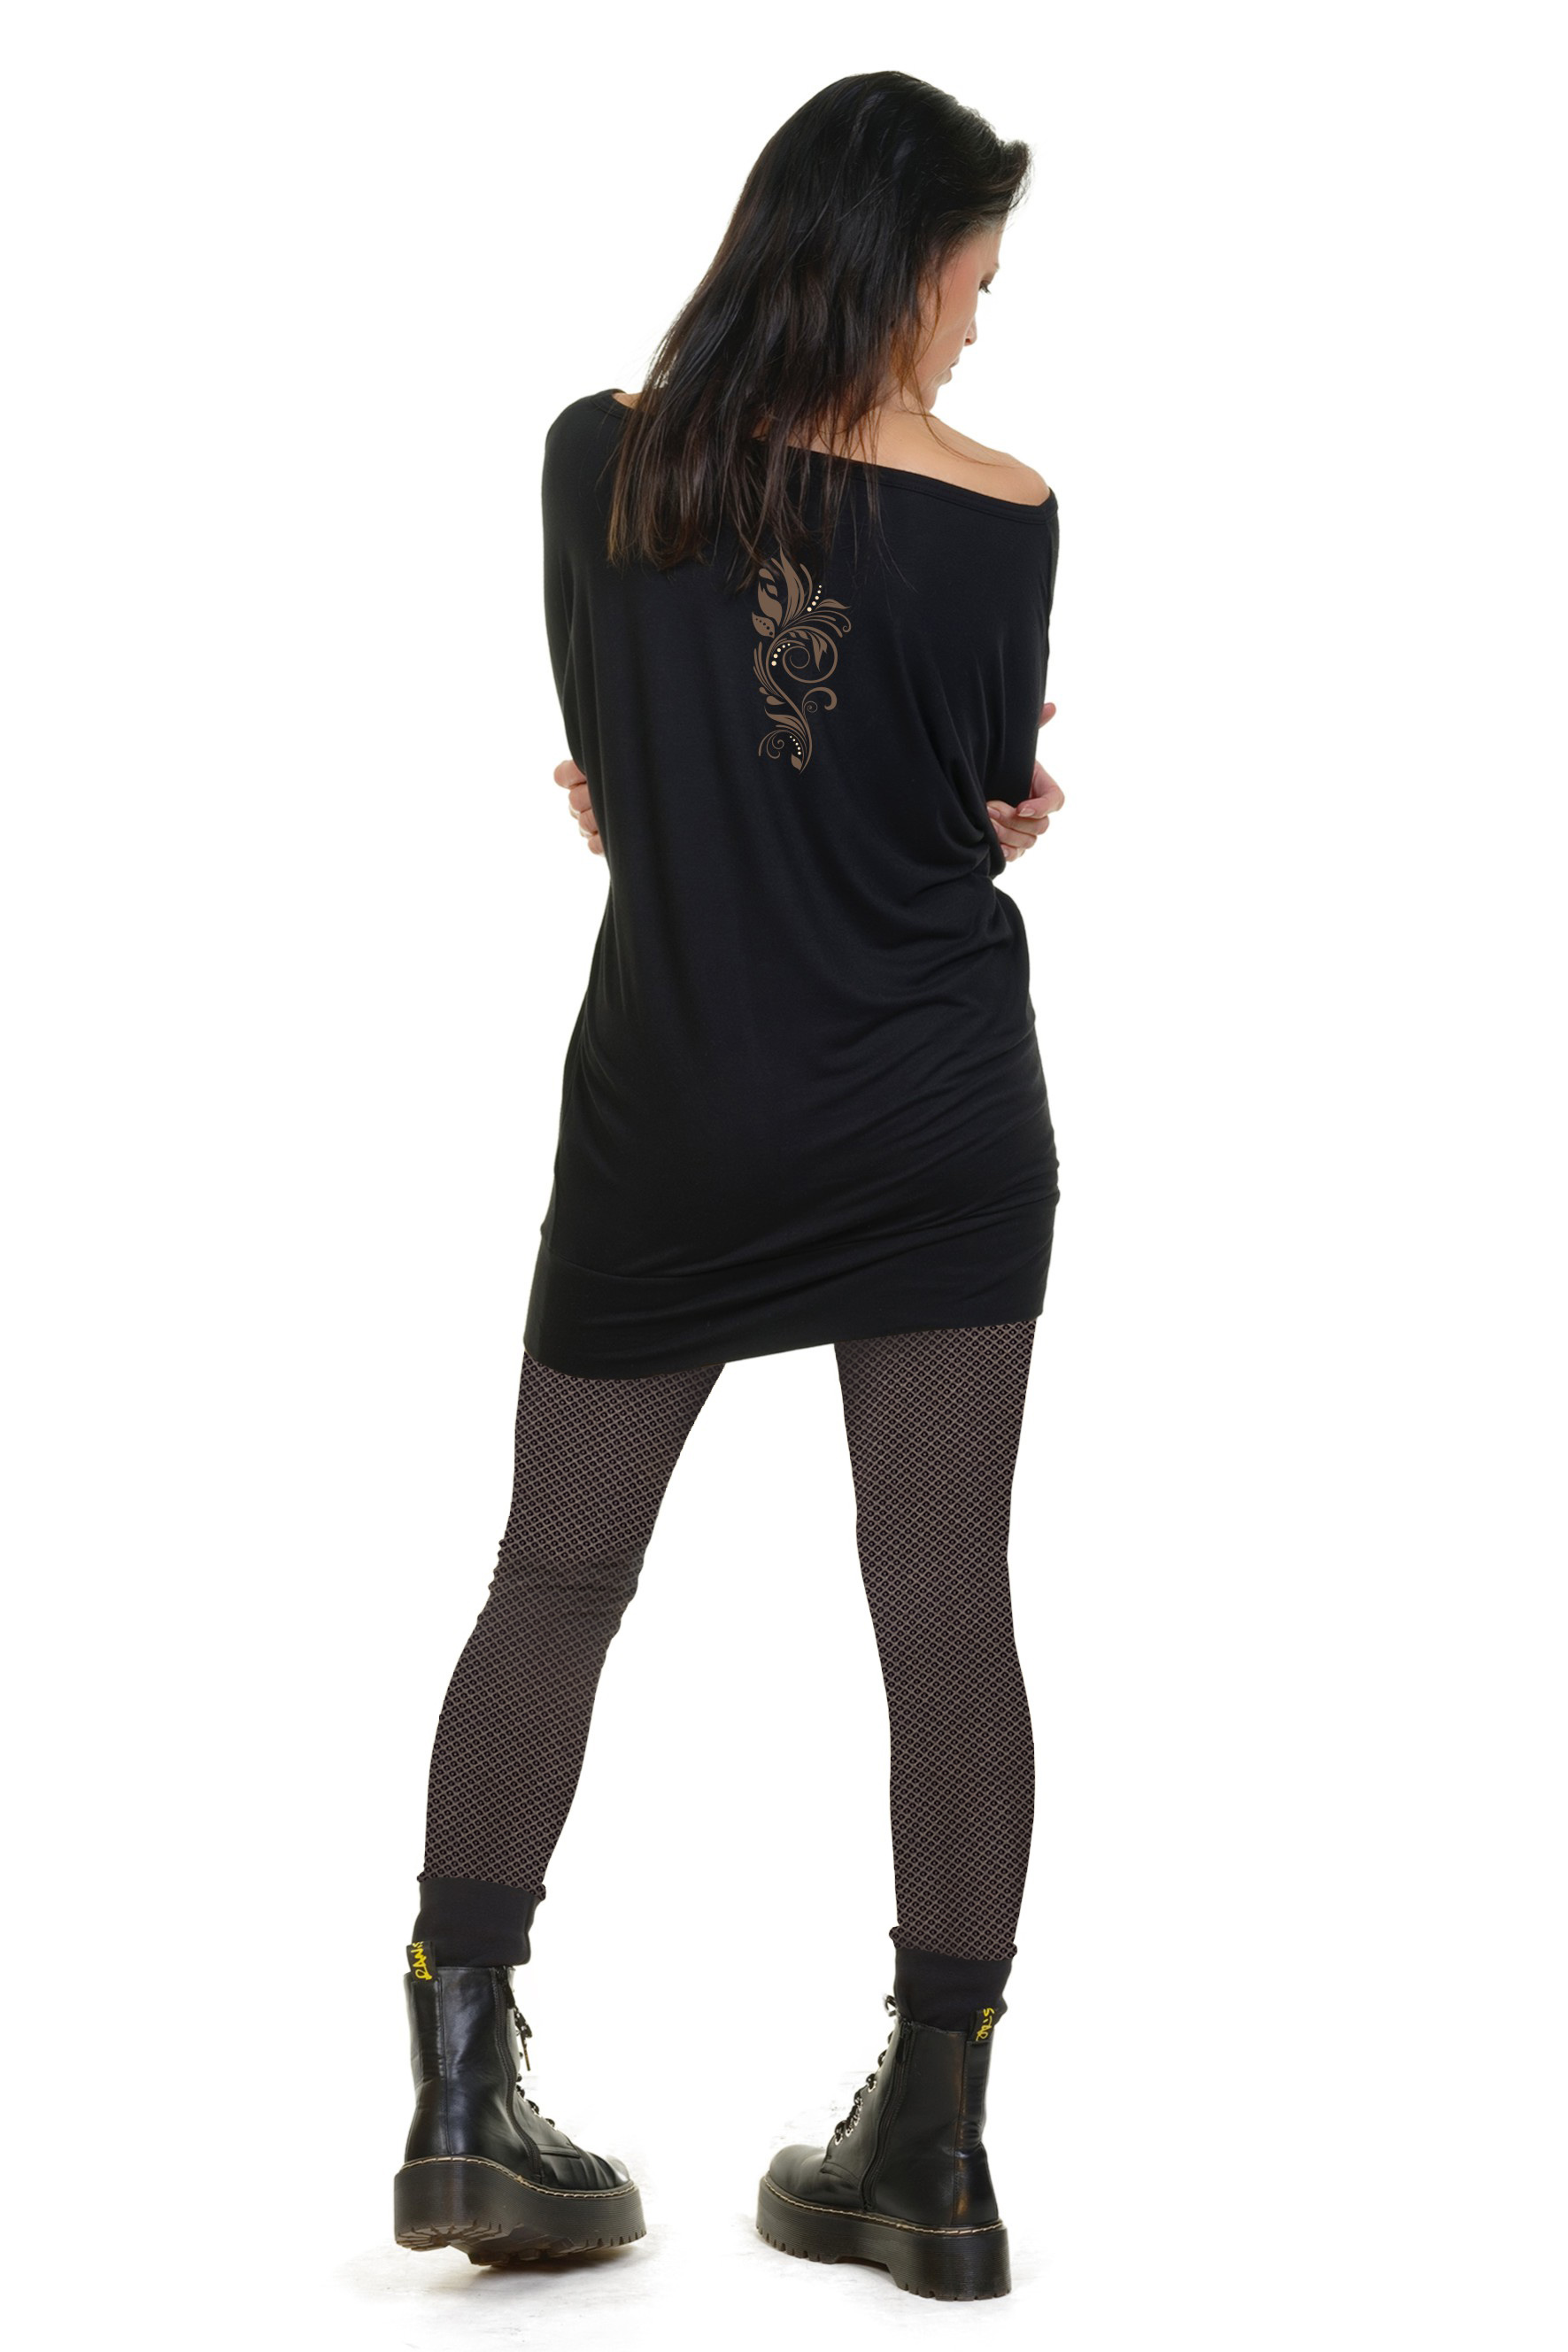 Barock Longdress & Leggins Kombi Angebot